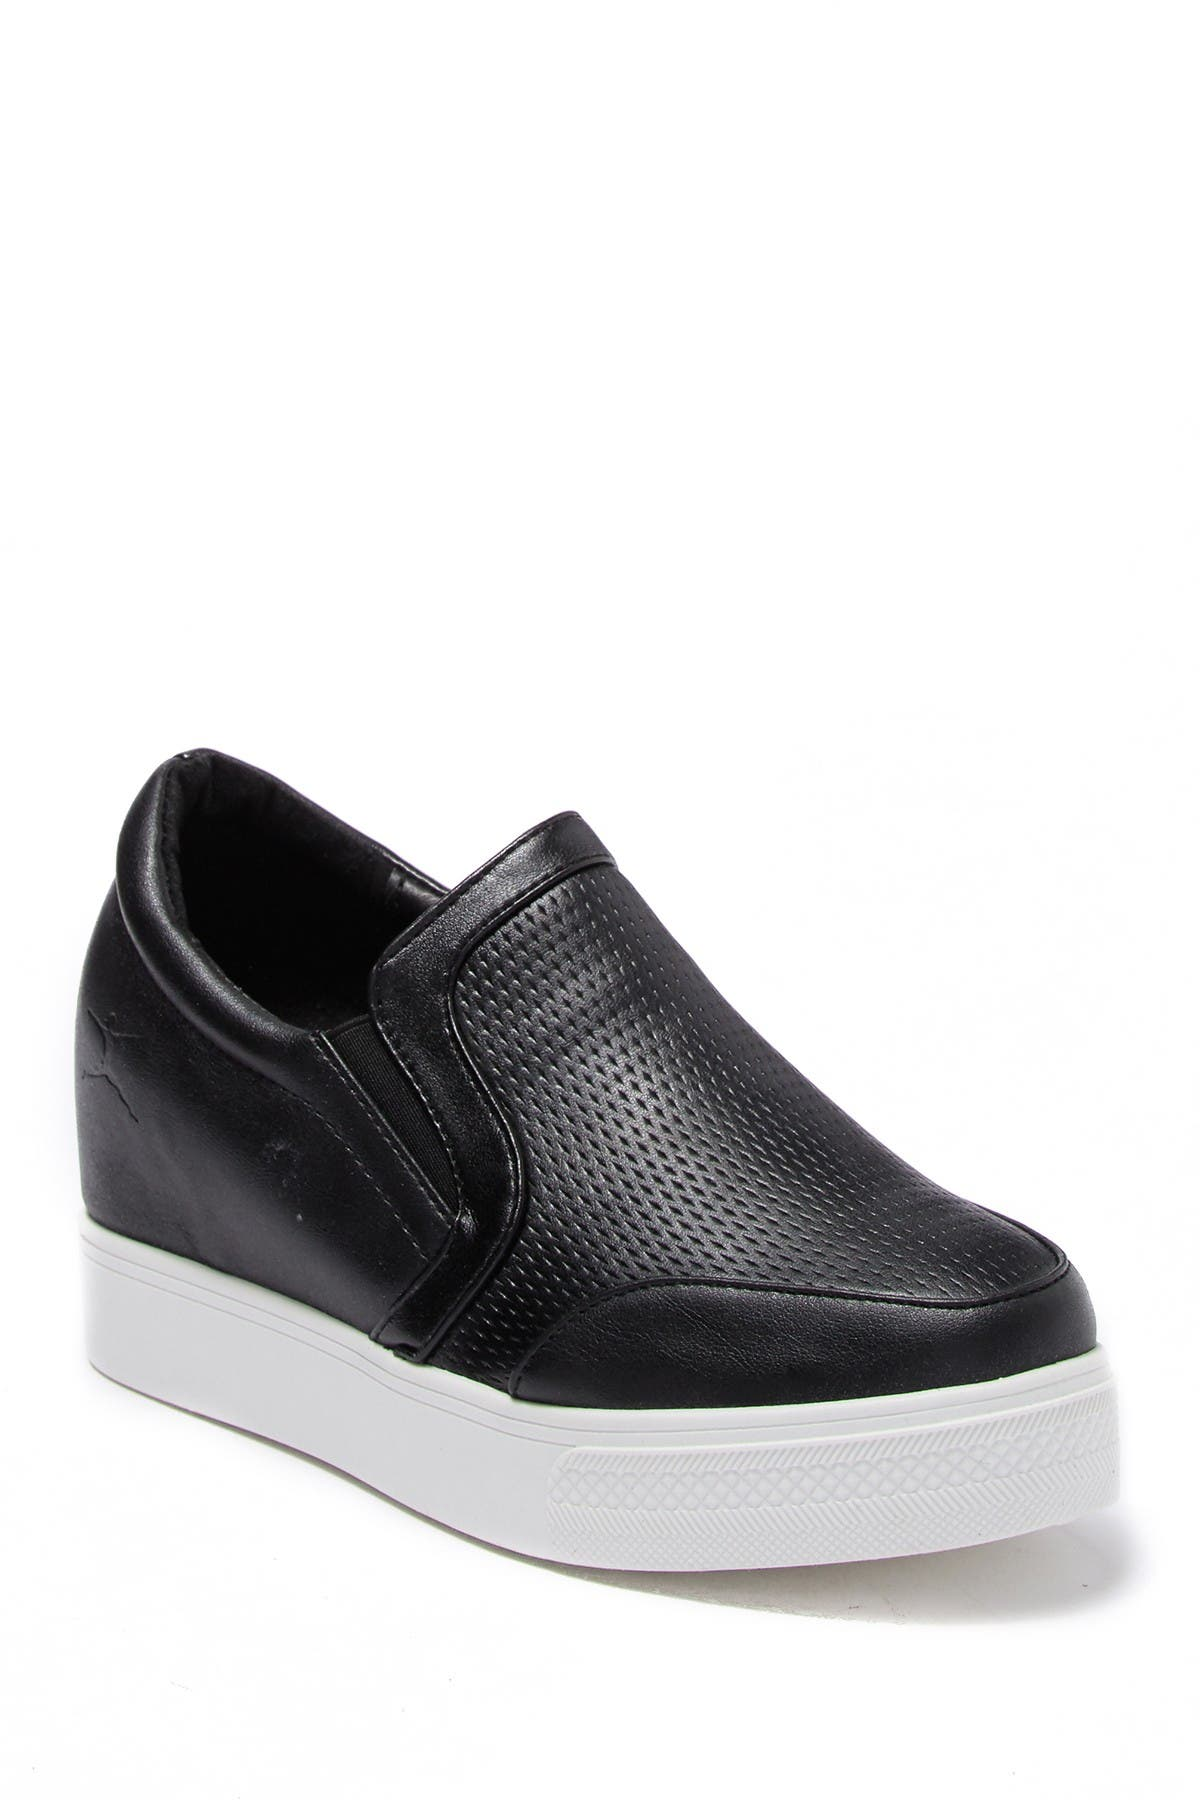 Image of DANSKIN Amaze Textured Wedge Sneaker